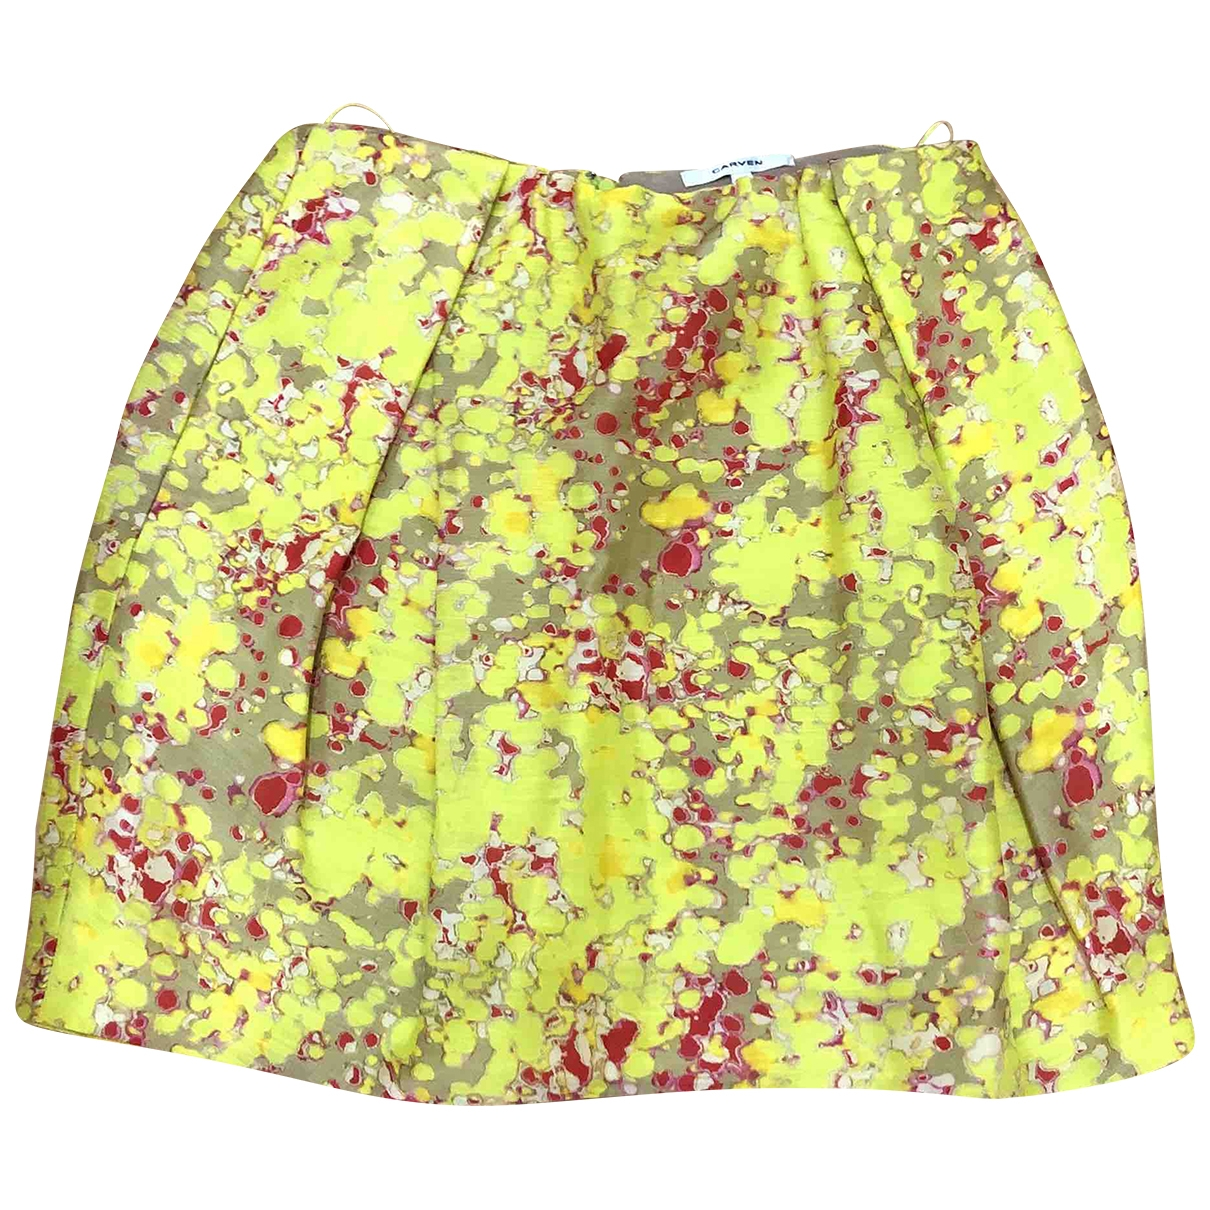 Carven \N Yellow Linen skirt for Women 38 FR